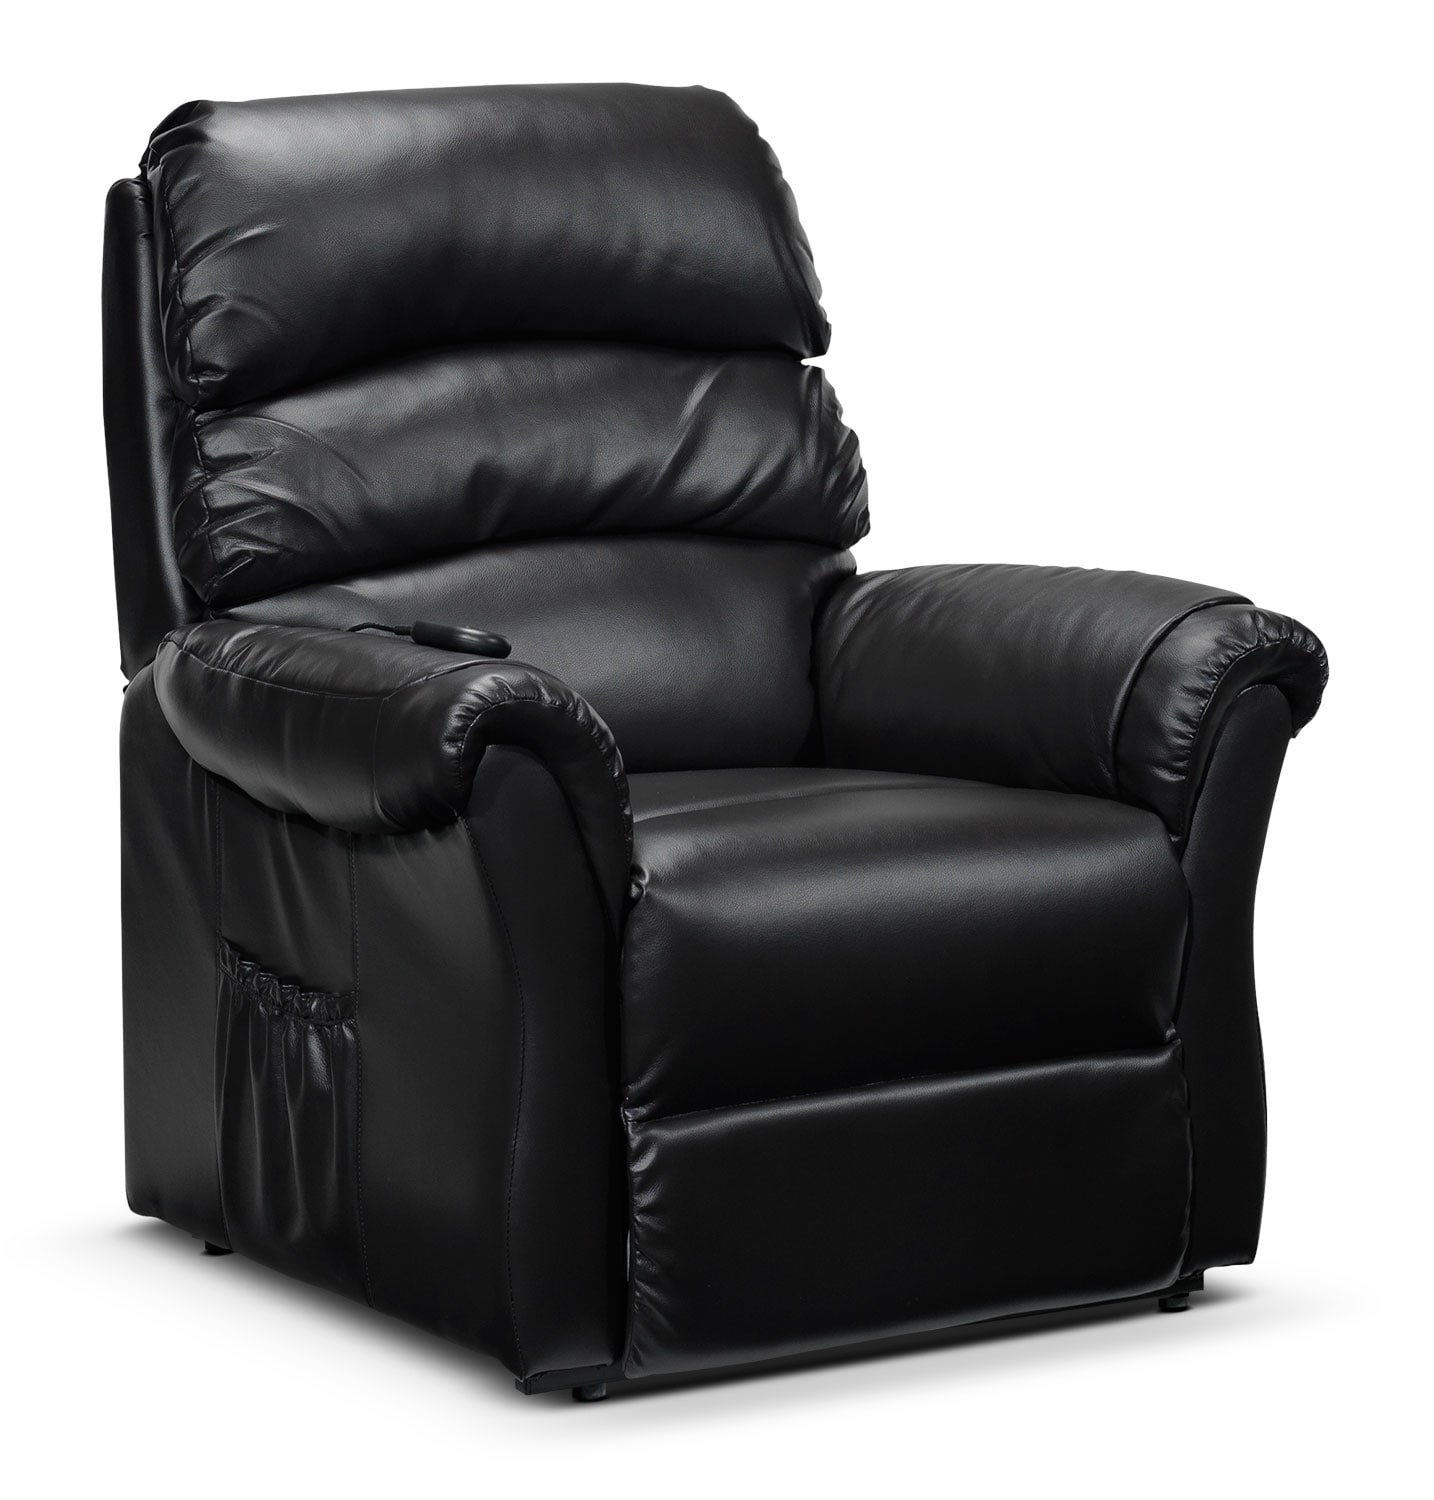 [Paolo Power Lift Recliner]